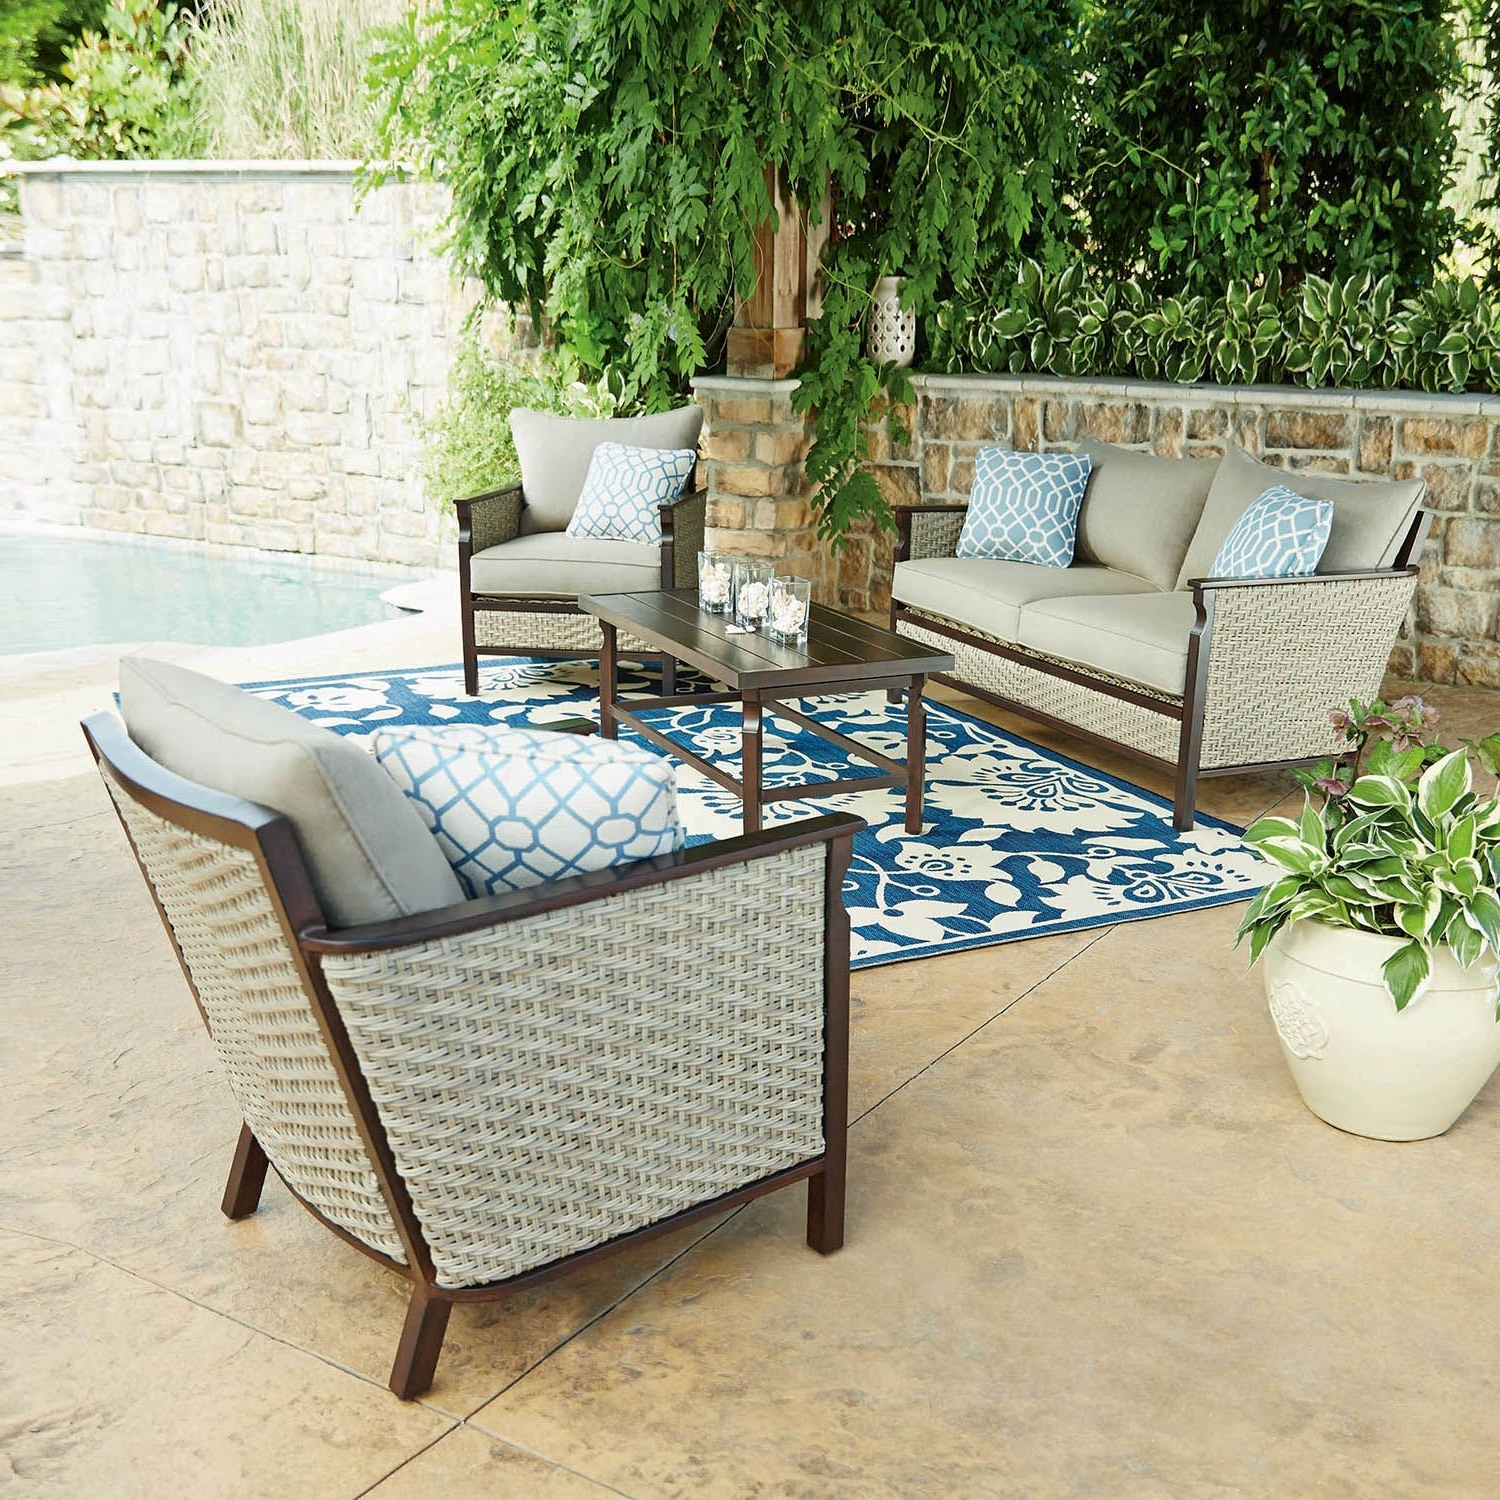 2019 Lounge Chair Ideas ~ Lounge Chair Ideas Sams Club Pool Chairs Patio Within Patio Conversation Sets At Sam's Club (View 2 of 20)